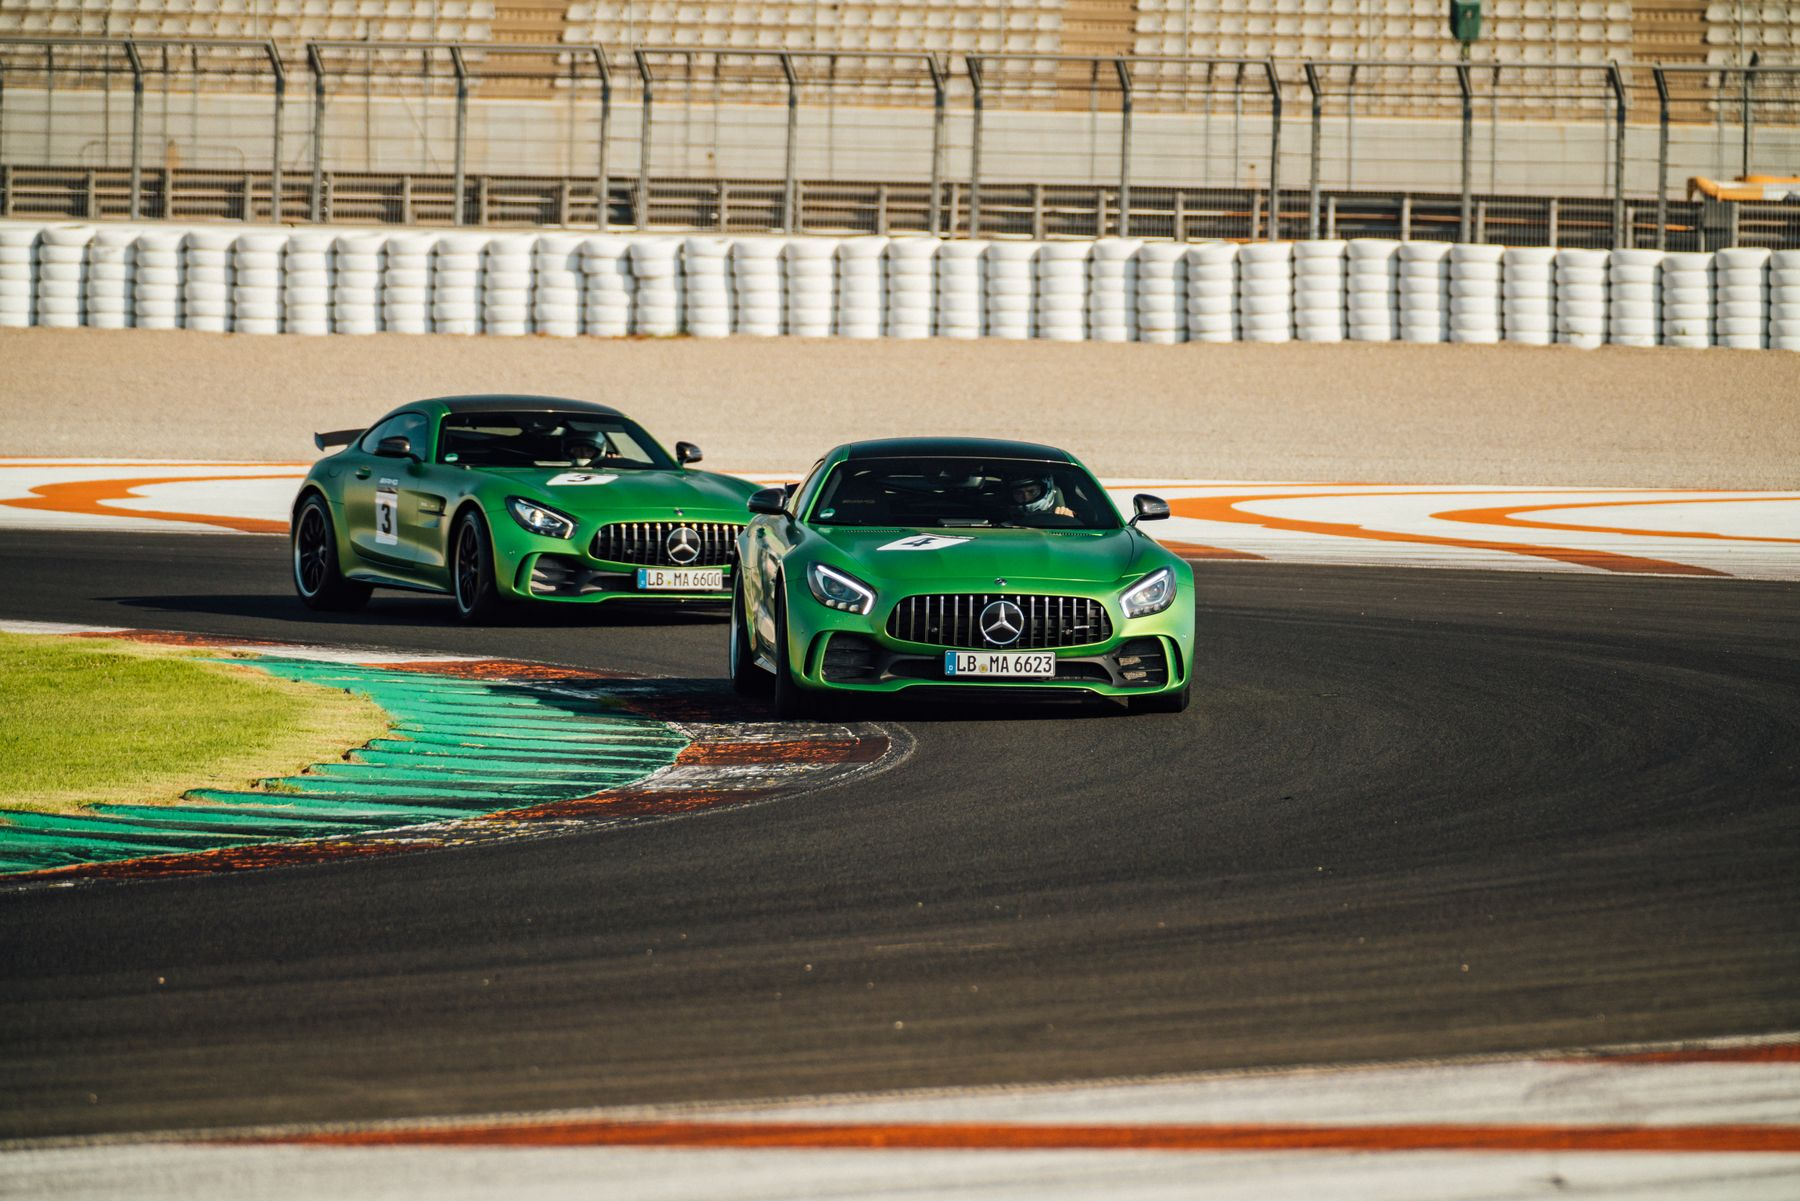 amg-racing-camp--amg-masters-27[1].jpeg